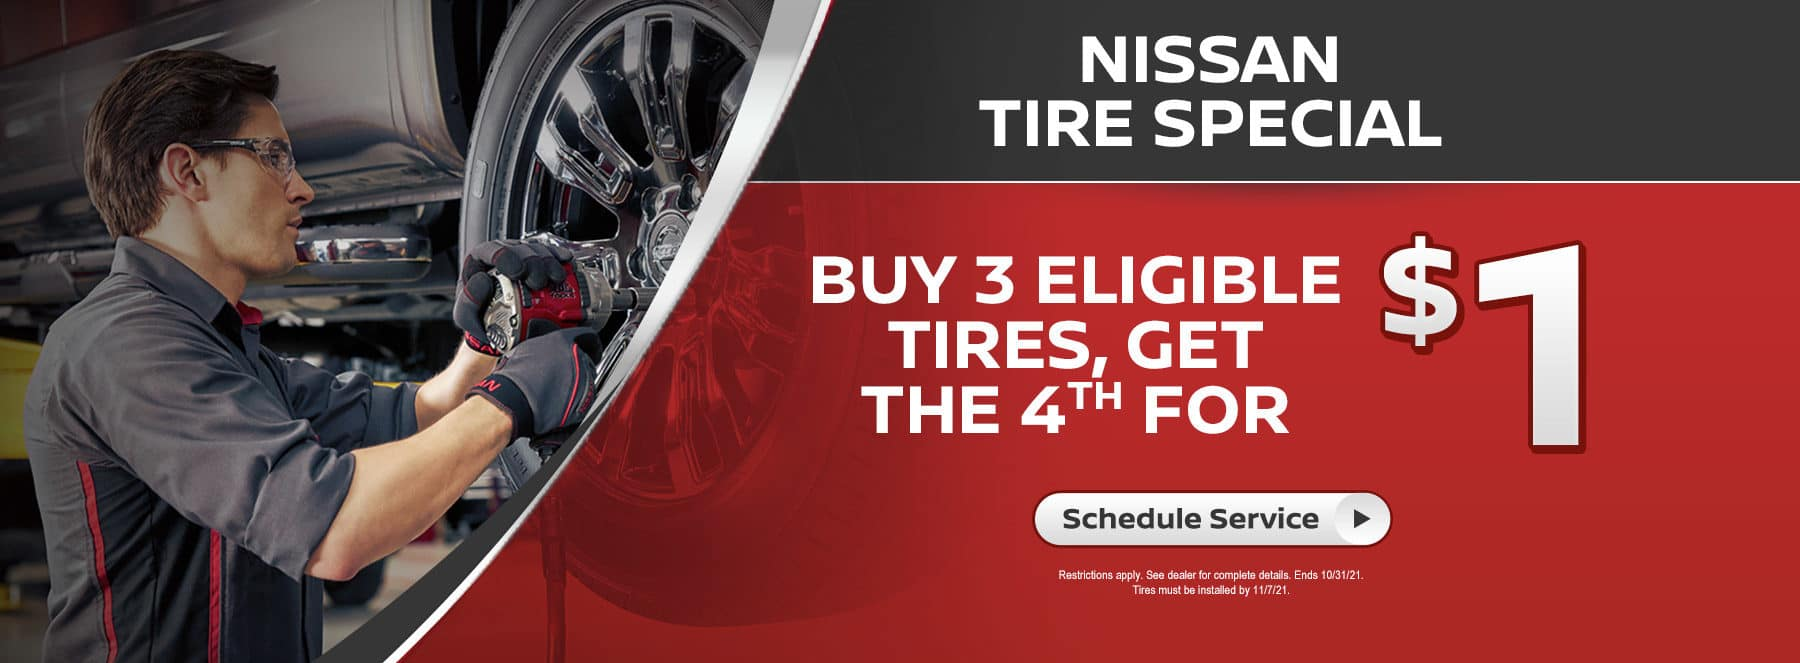 Nissan Tire Special Coupon banner